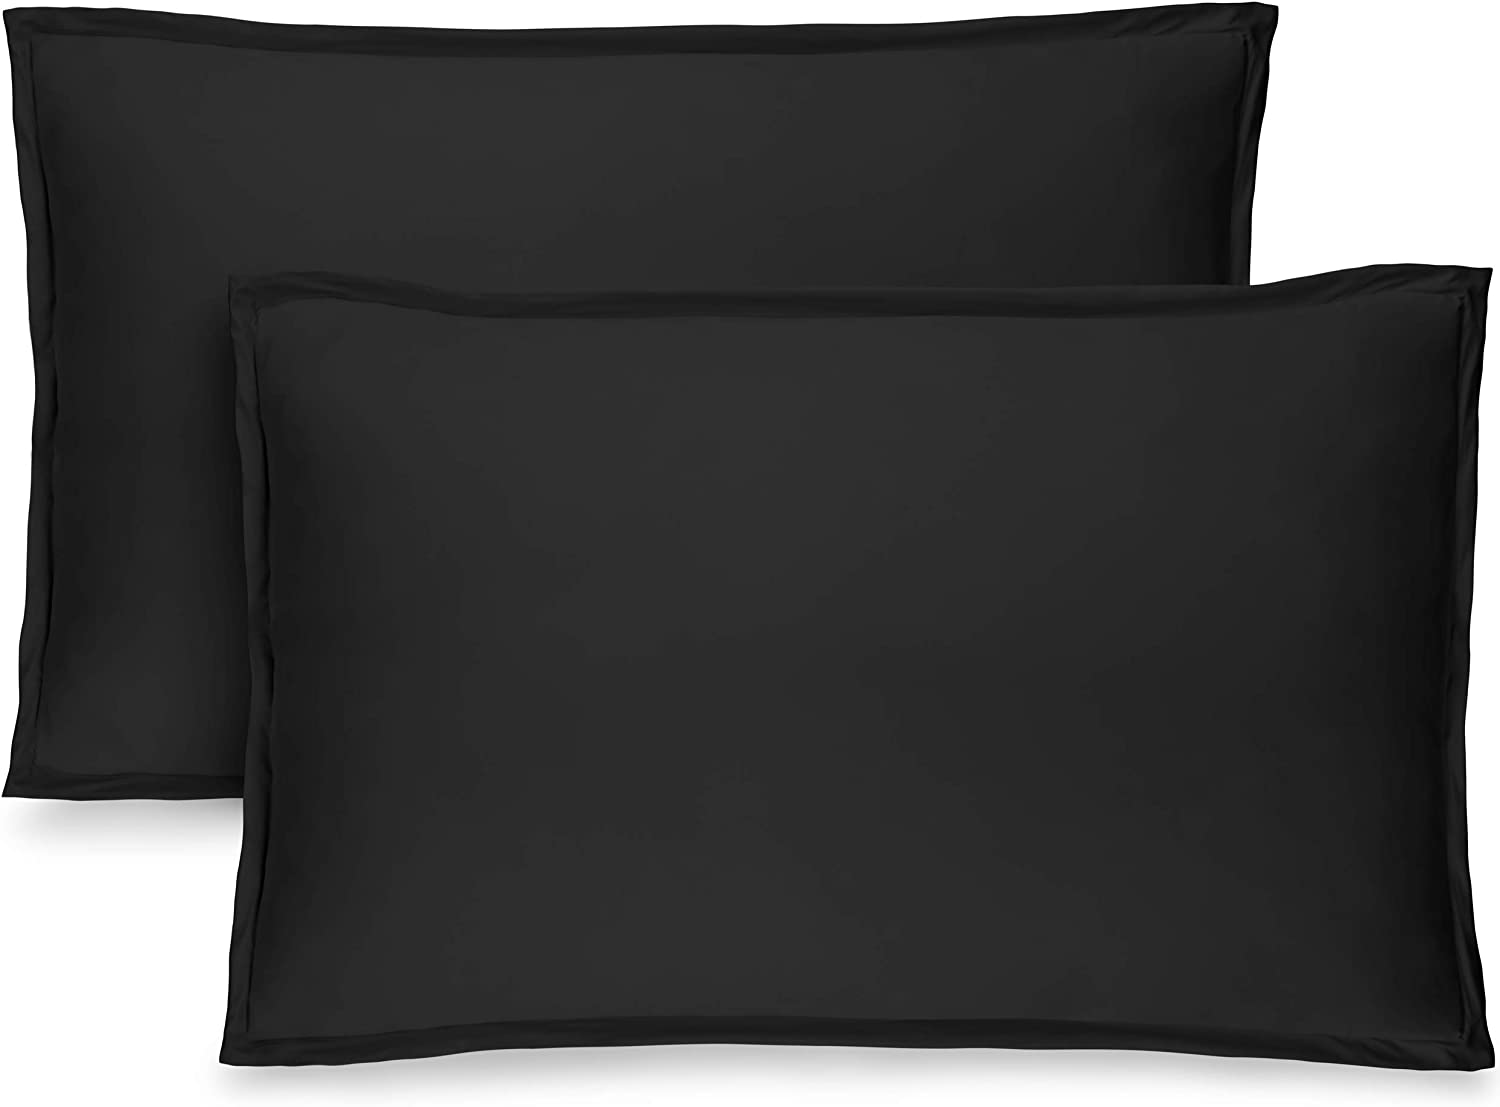 Bare Home Premium 1800 Ultra-Soft Microfiber Pillow Sham - Double Brushed - Hypoallergenic - Wrinkle Resistant (King Pillow Sham Set of 2, Black)